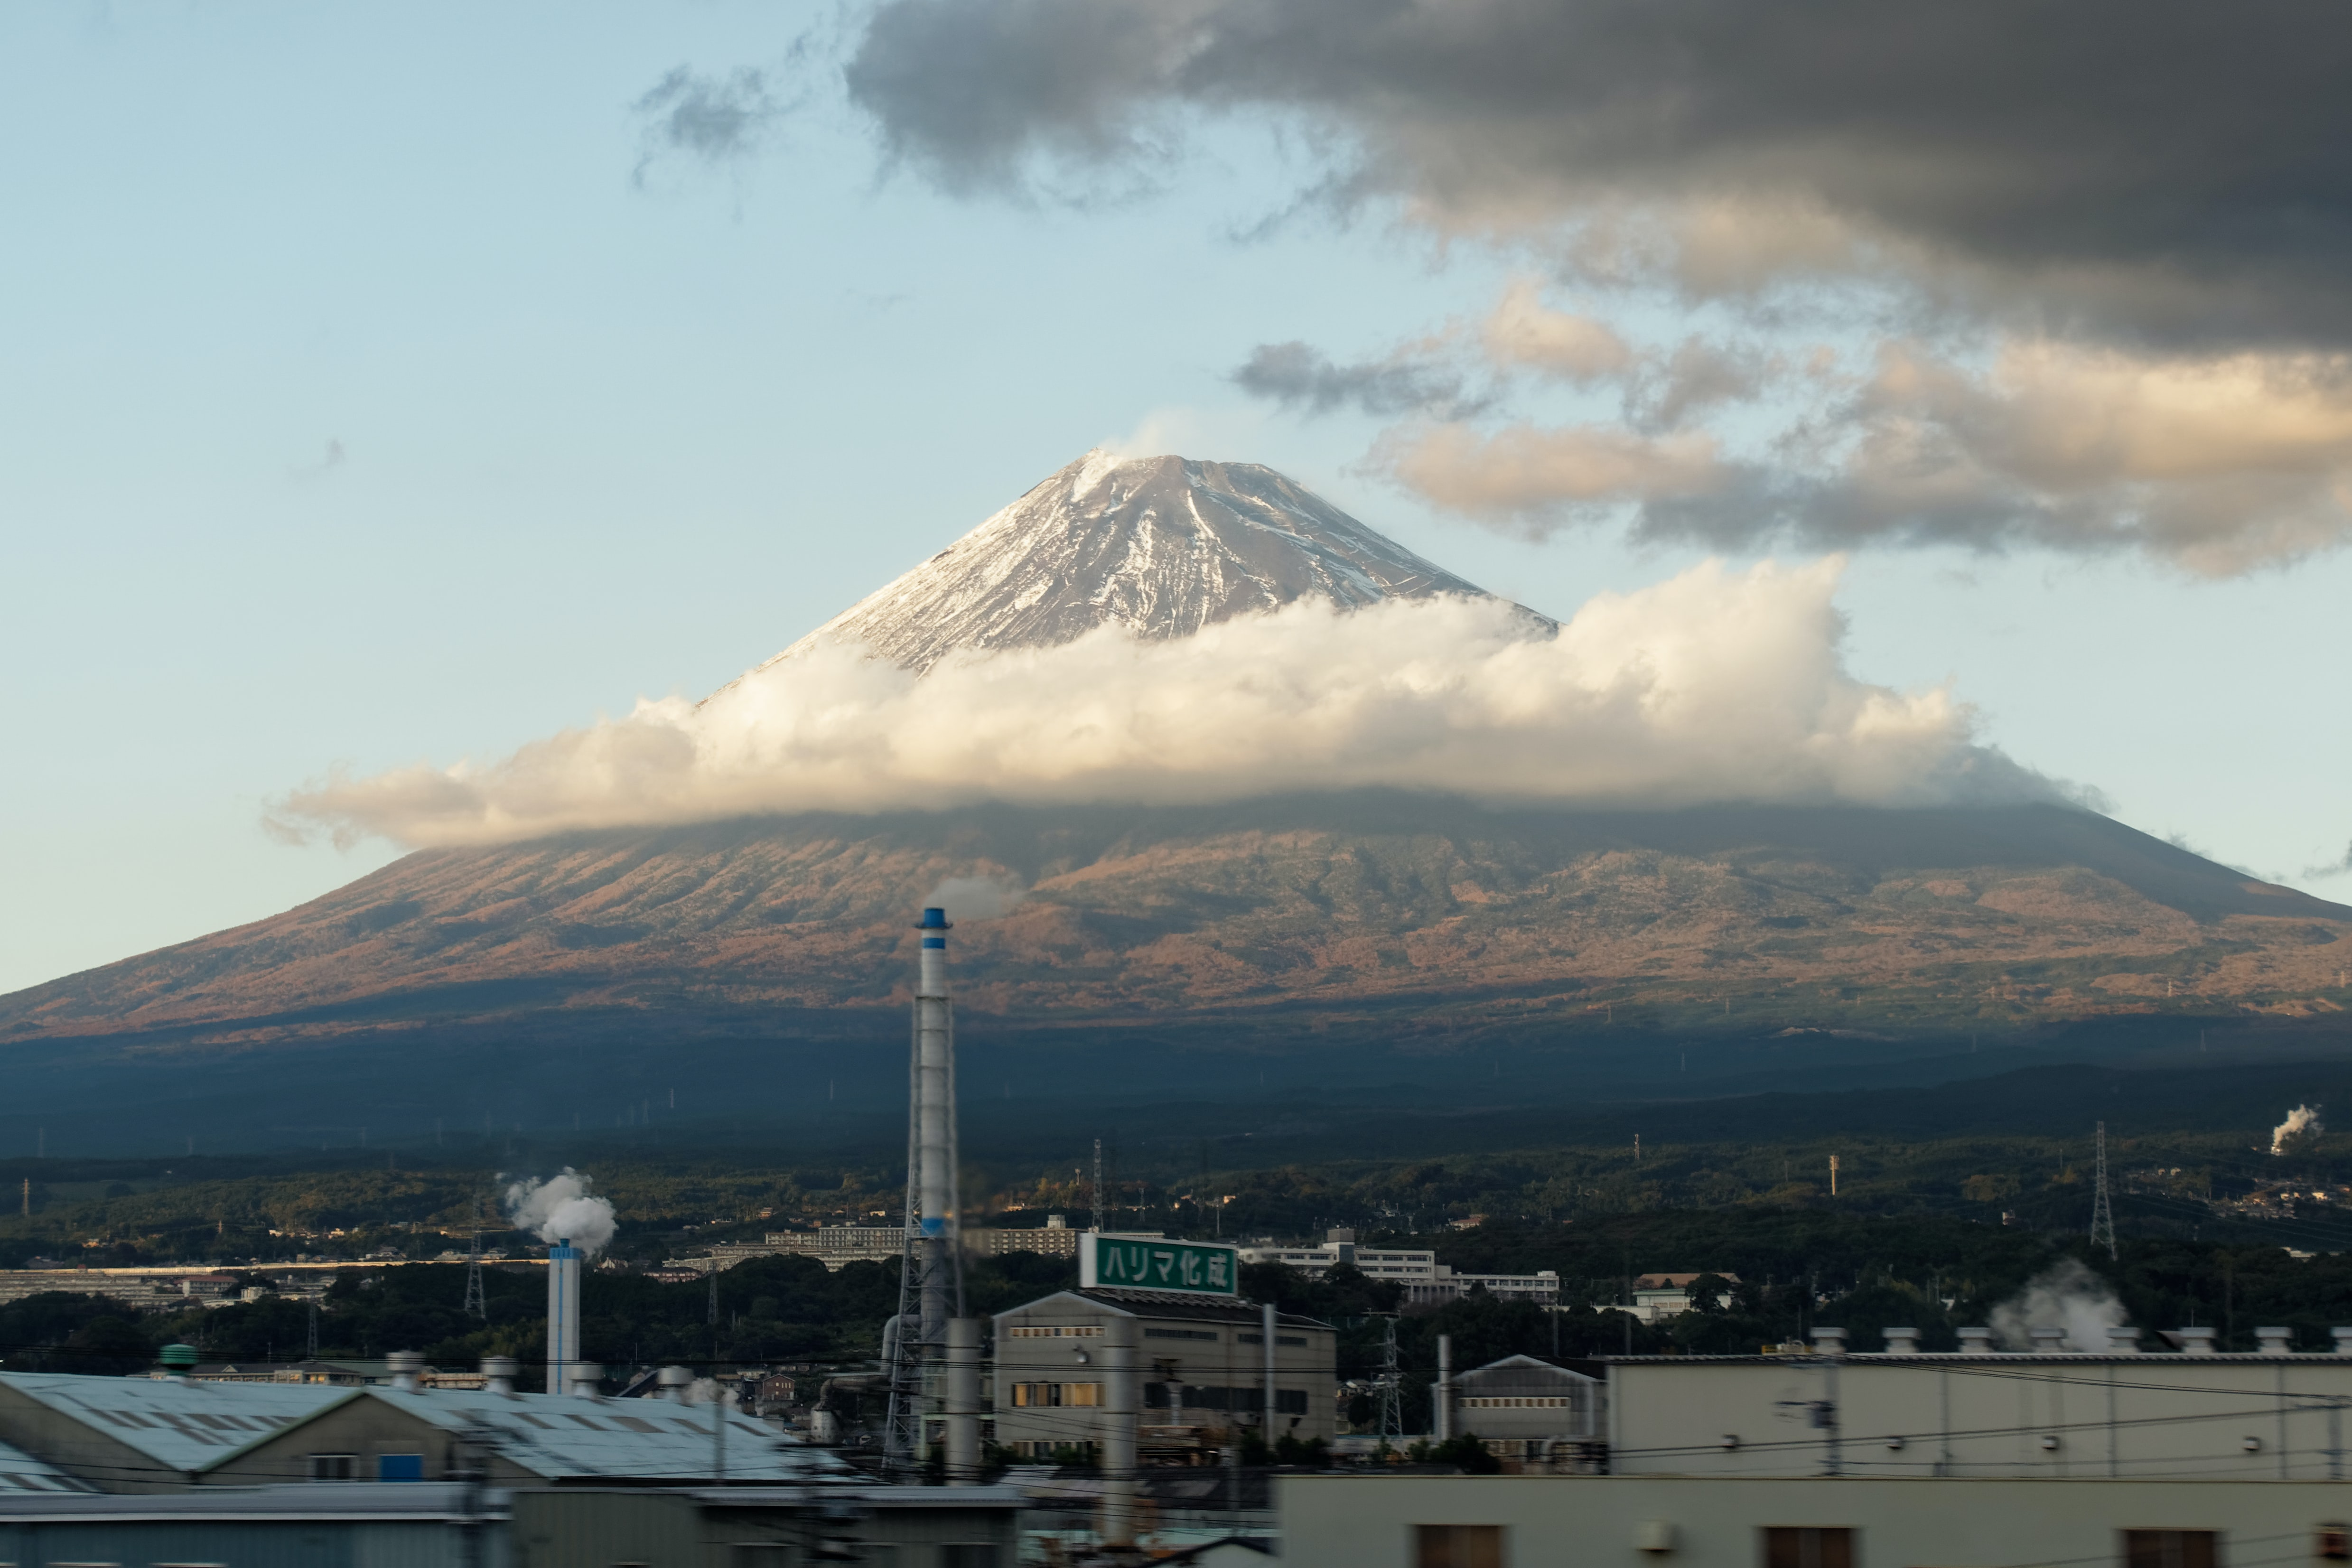 Mount Fuji during daytime